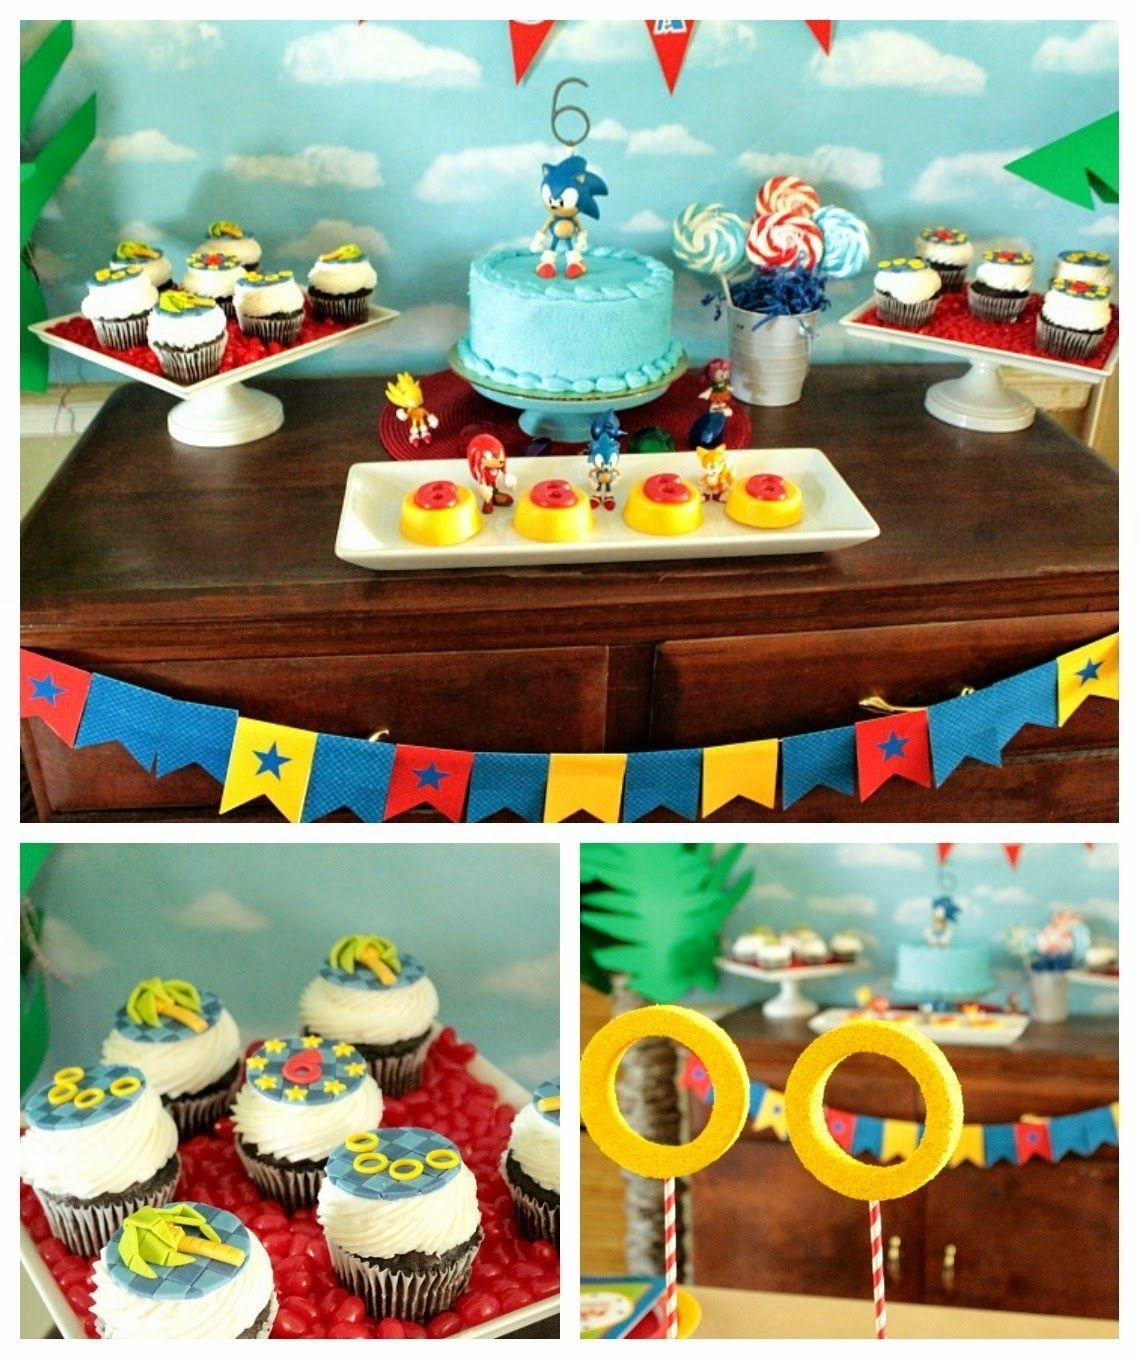 10 Nice Sonic The Hedgehog Party Ideas sonic the hedgehog partycupcake wishes birthday dreams 2021